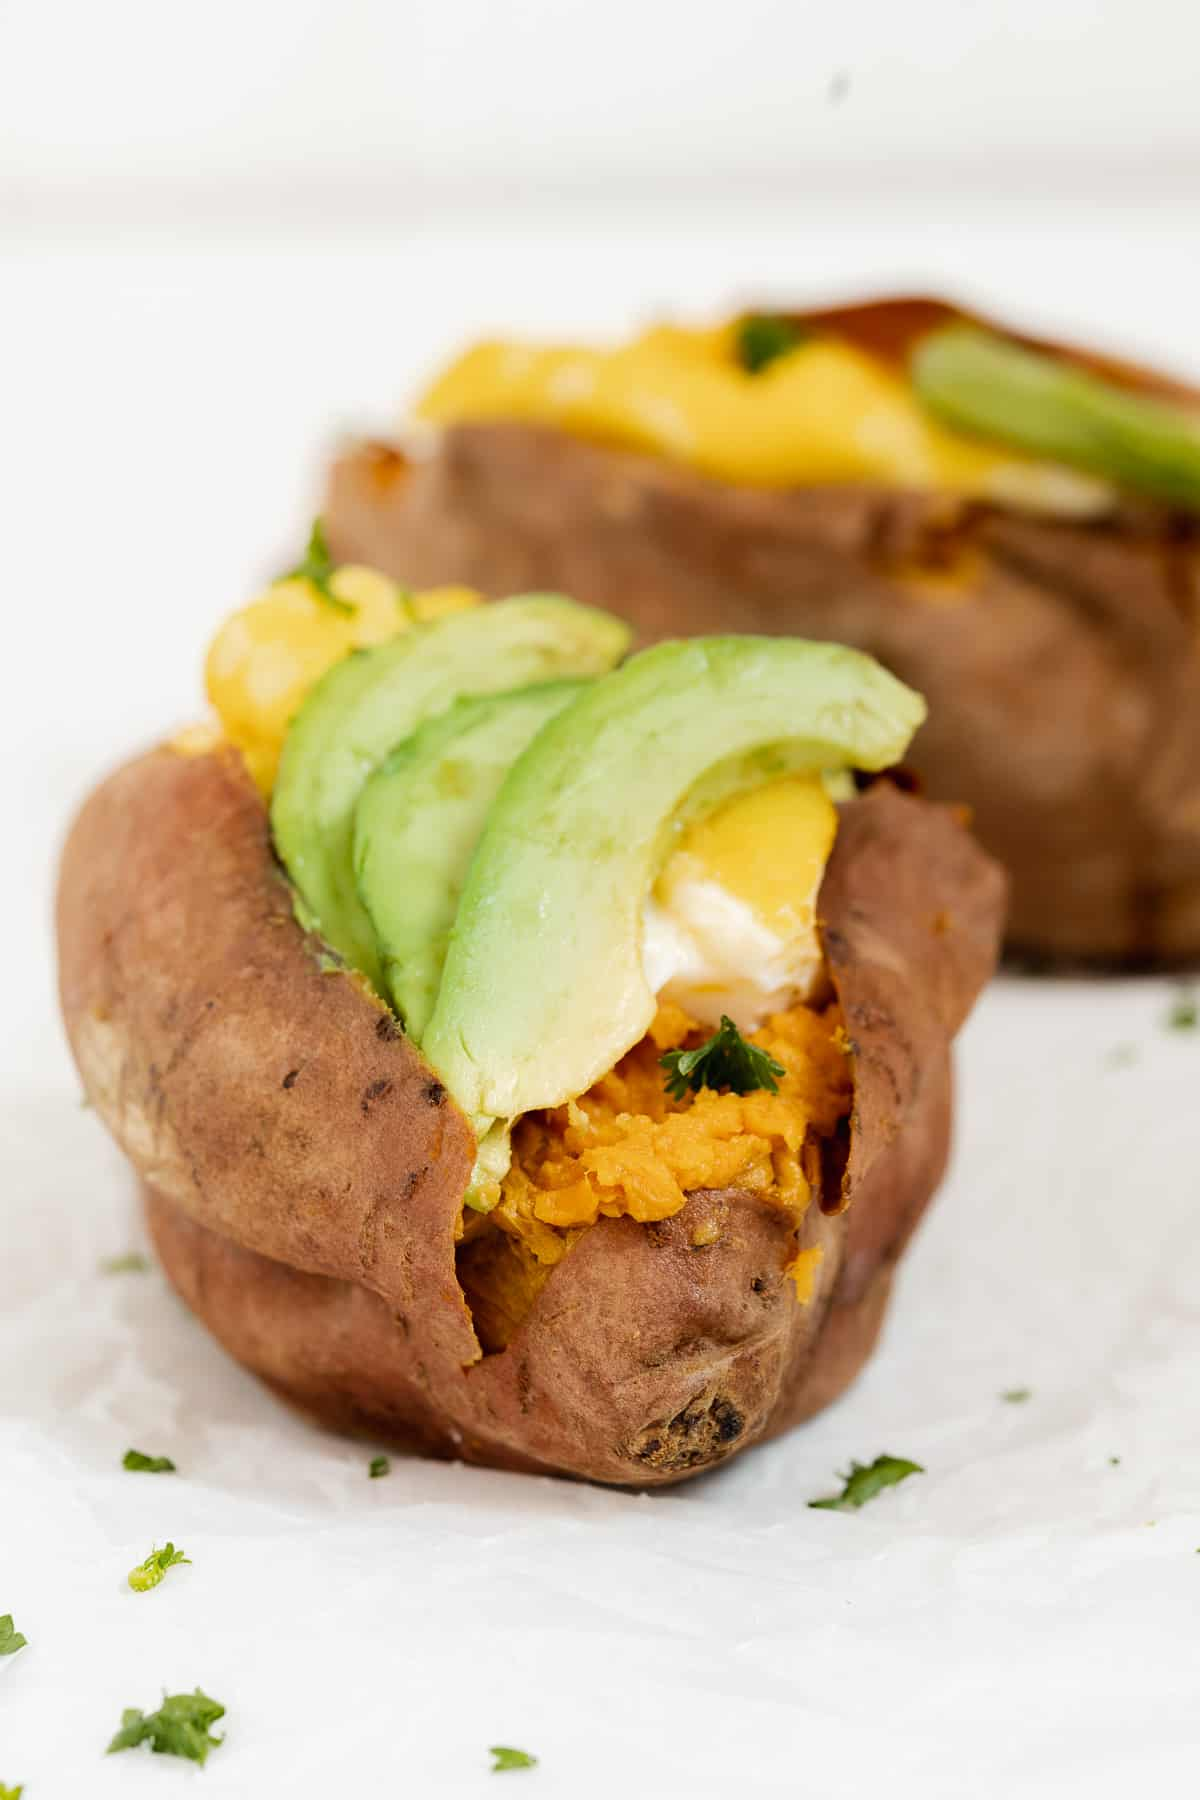 Front view of a stuffed sweet potato with avocado slices and herbs.